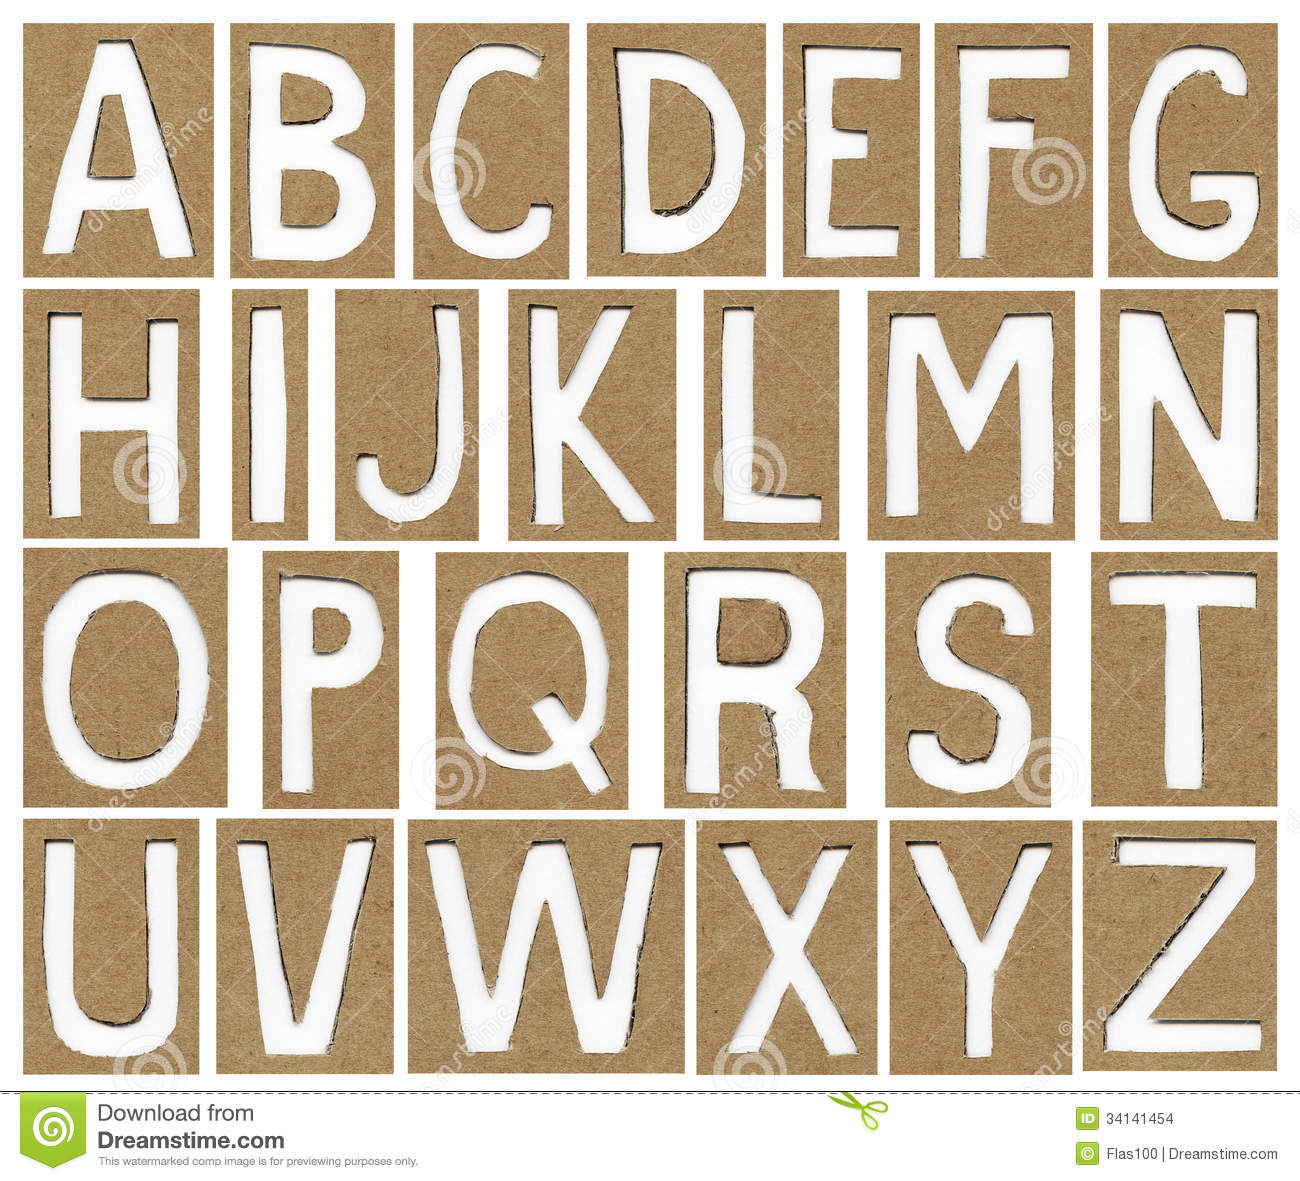 Alphabet letters made from cardboard paper stock images for Alphabet letters cardboard